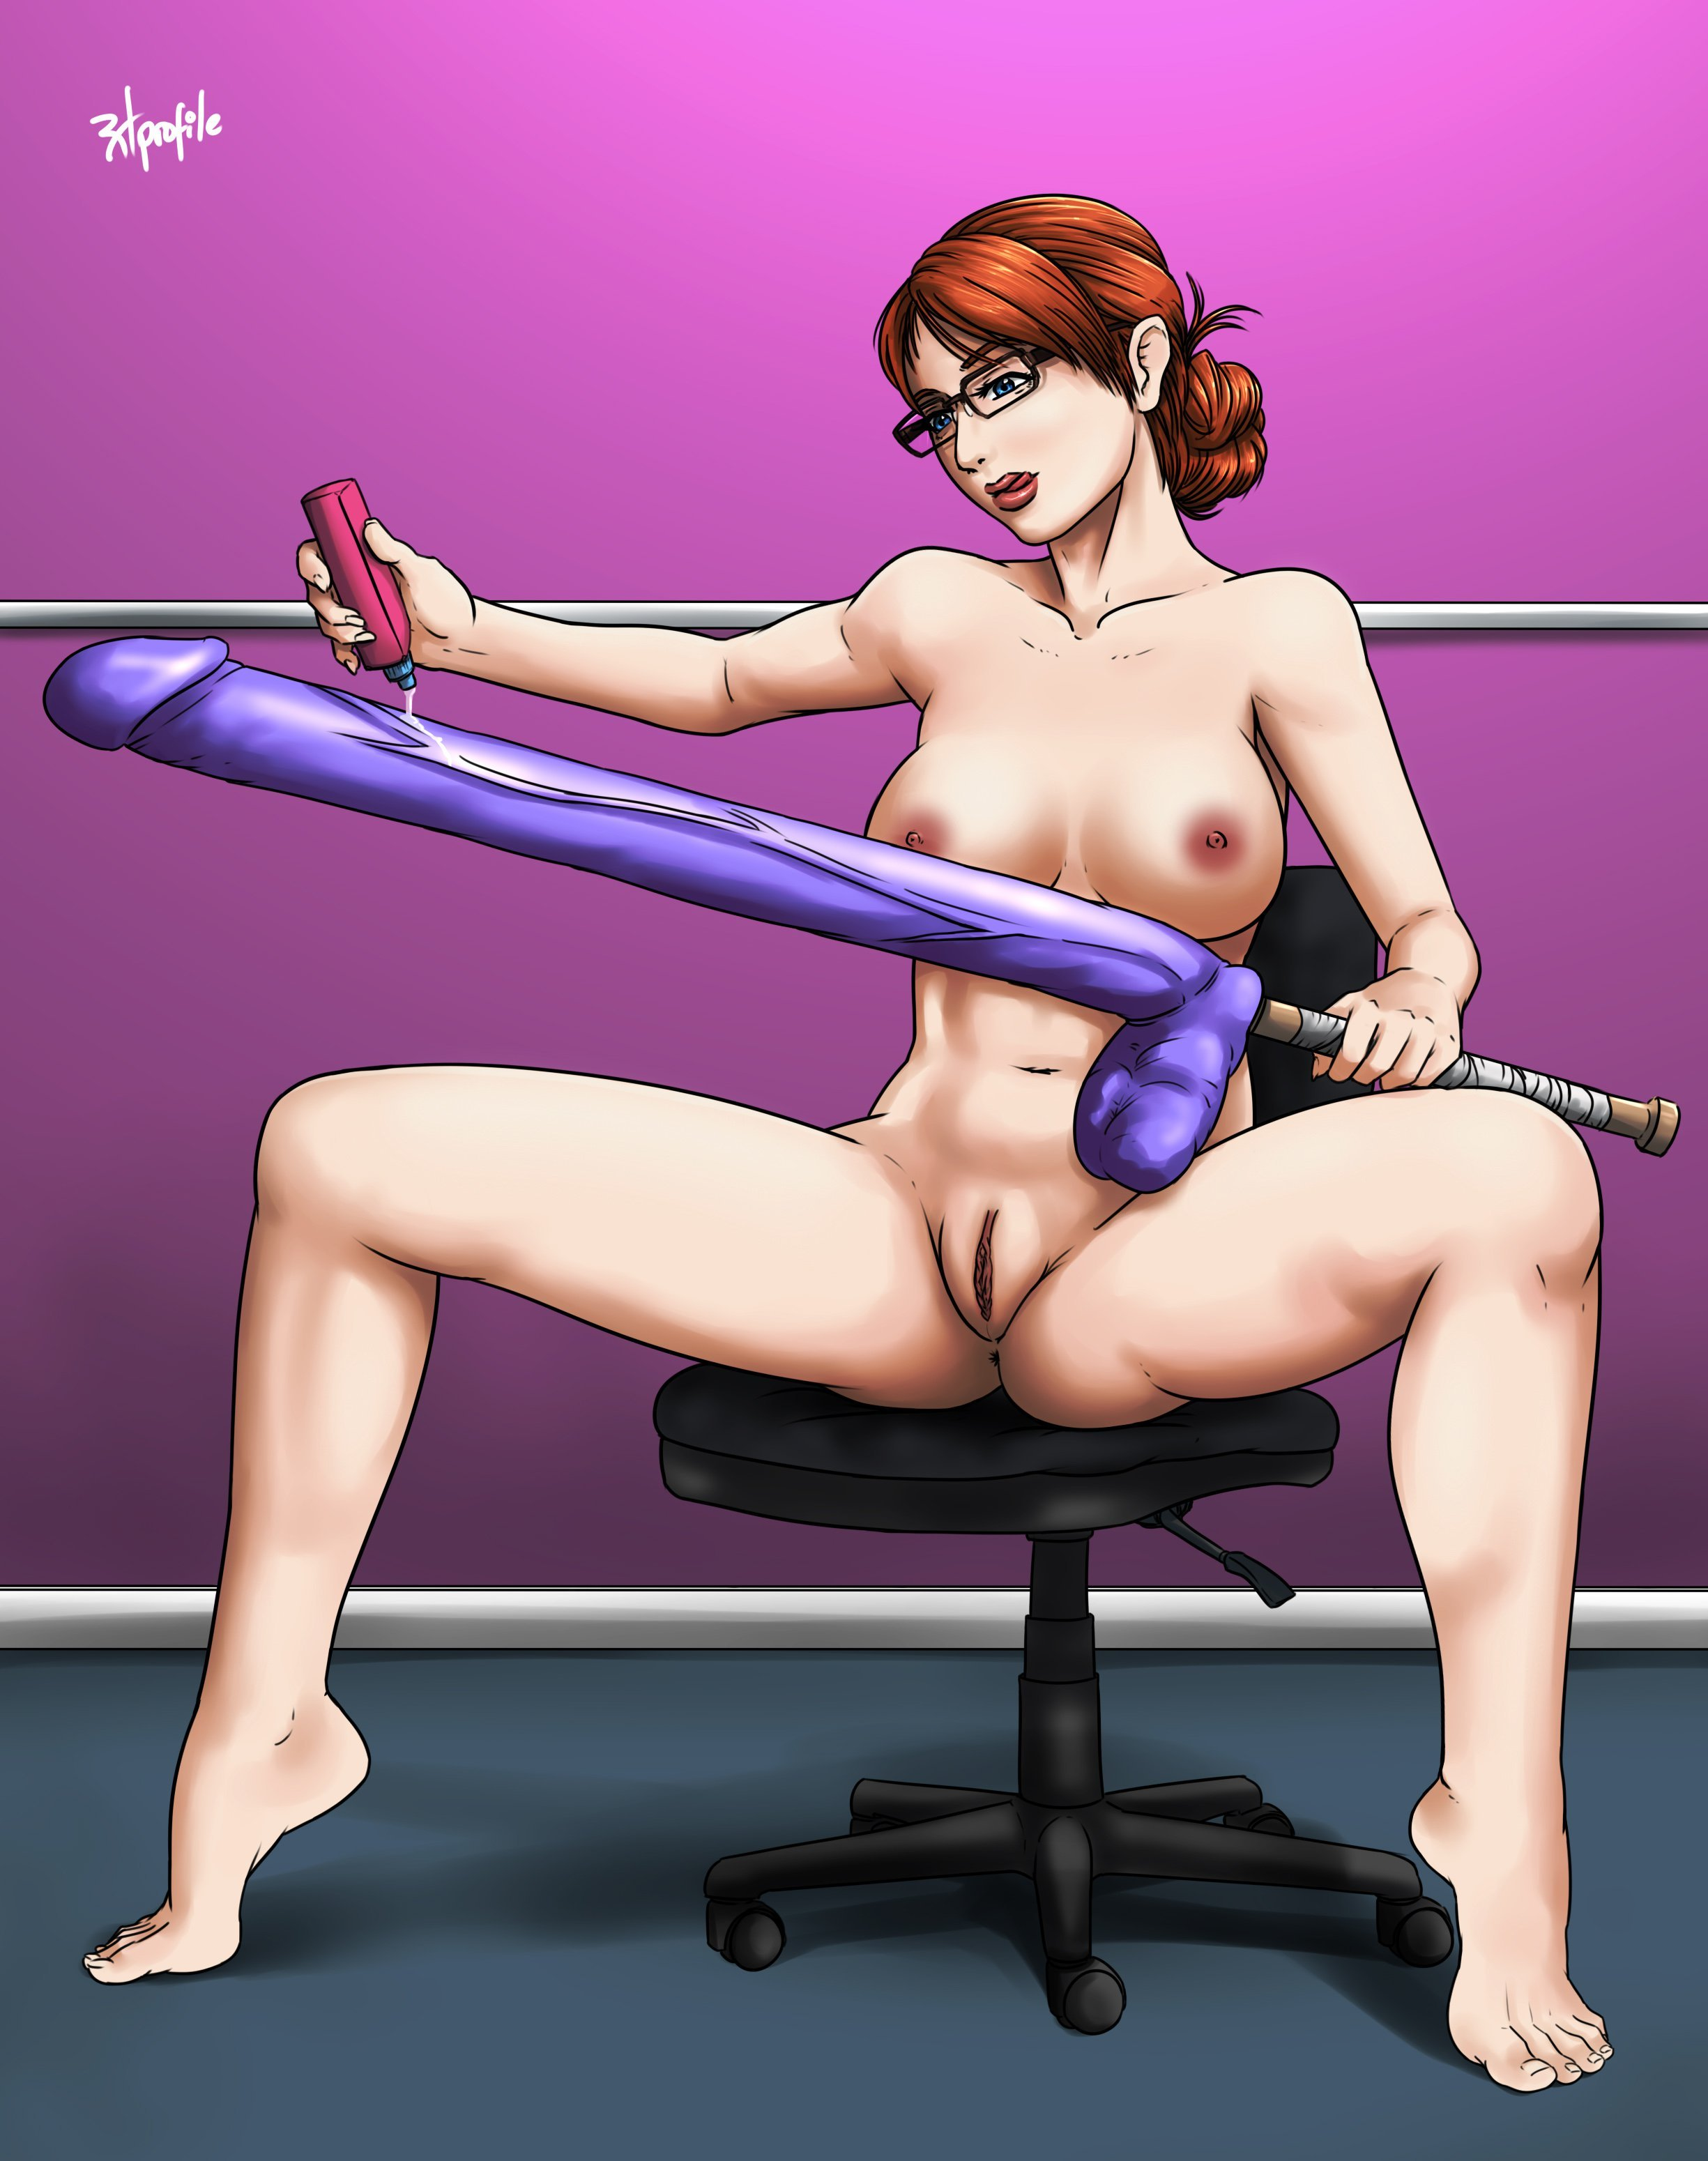 Saints row4 sex mod naked images